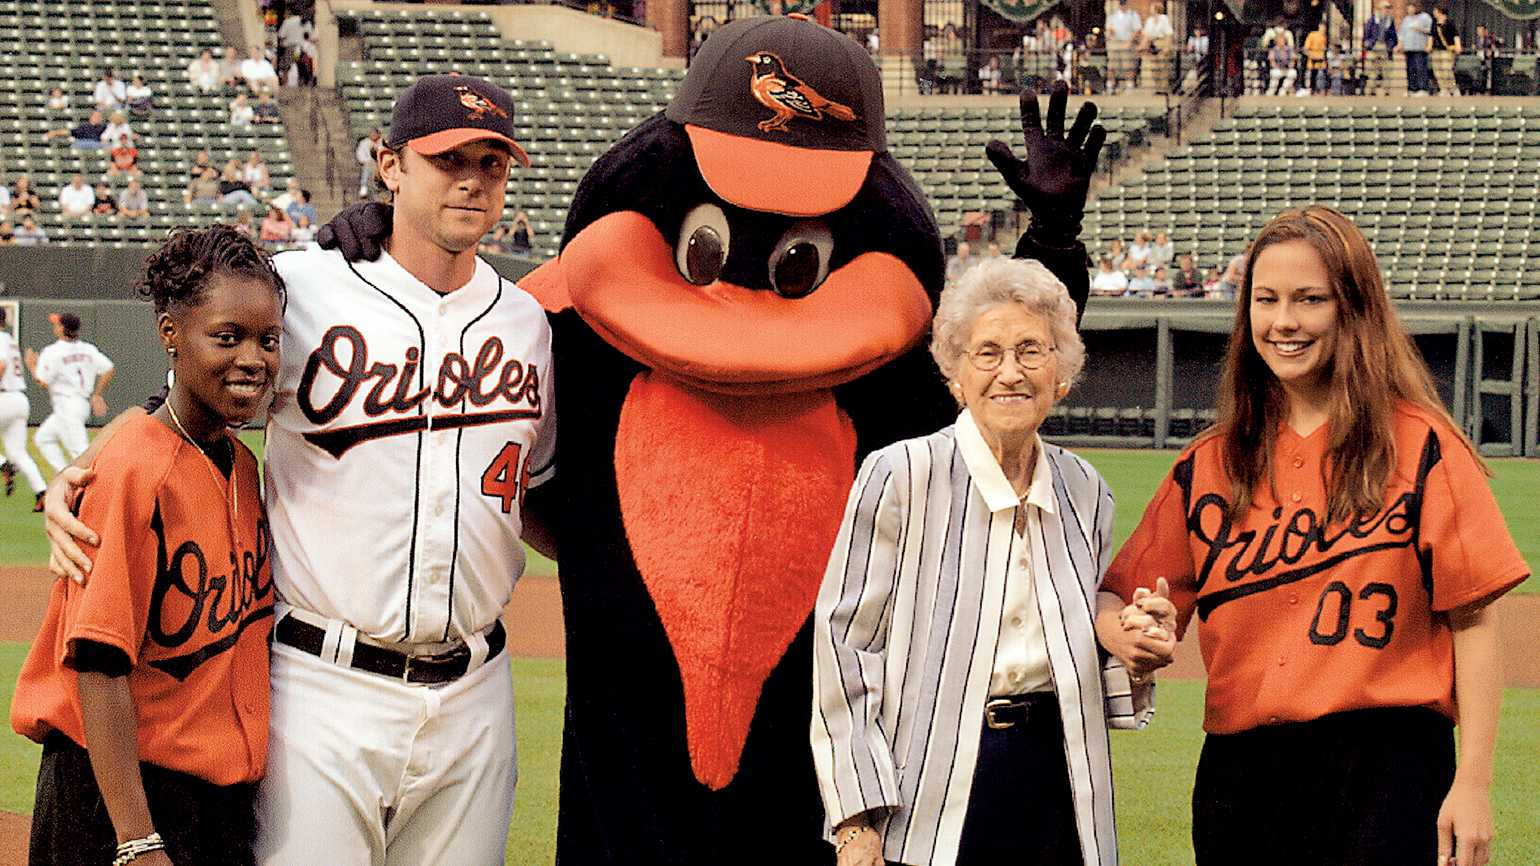 Peggy Rowe's mom with the Orioles' ball girls, mascot and pitcher Kerry Ligtenberg